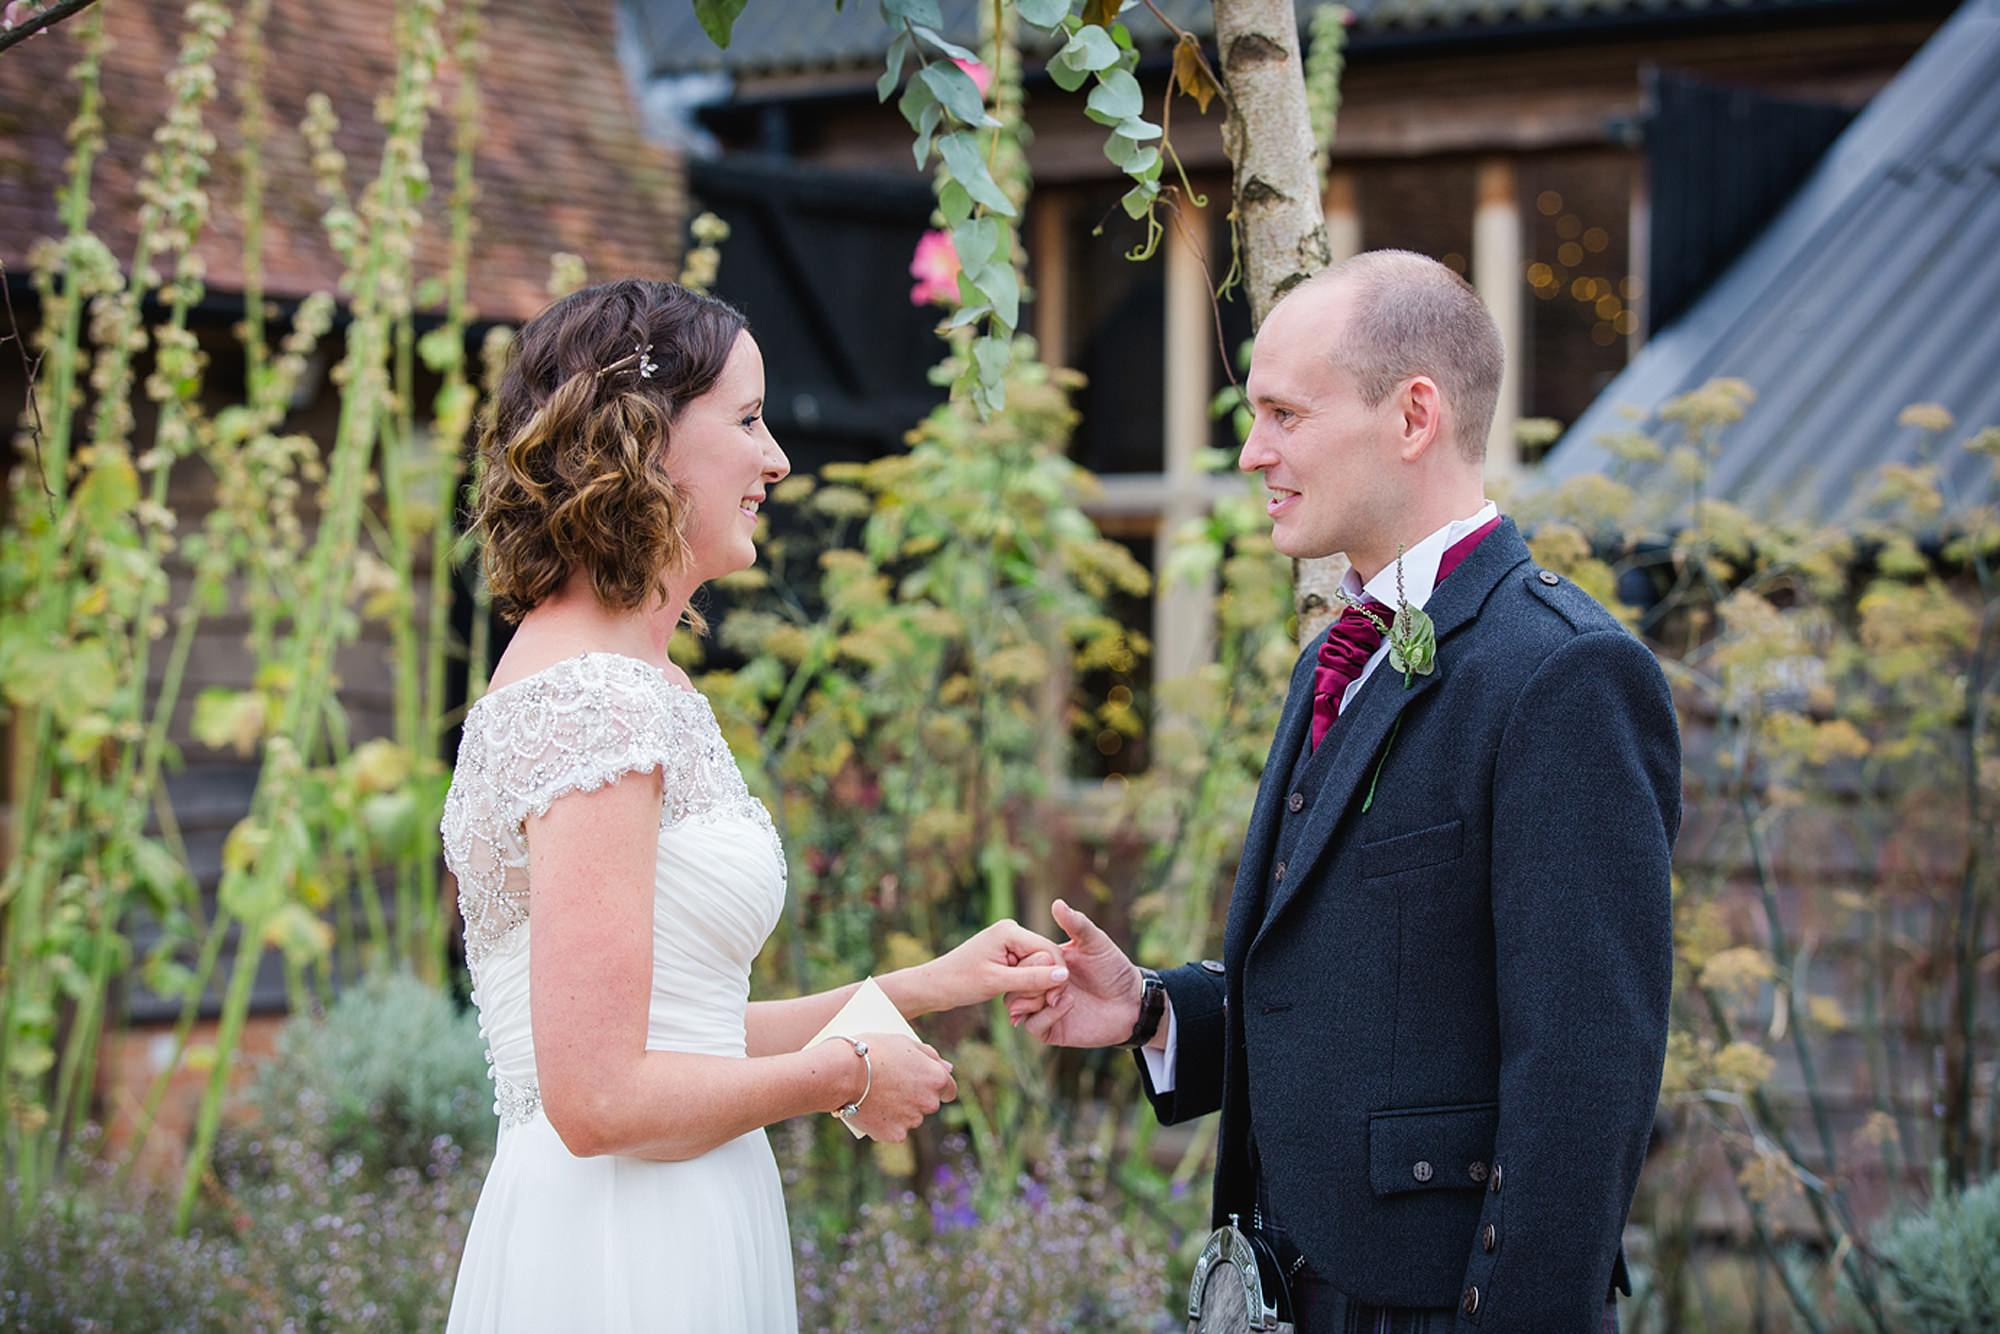 outdoor humanist wedding photography bride and groom exchange vows